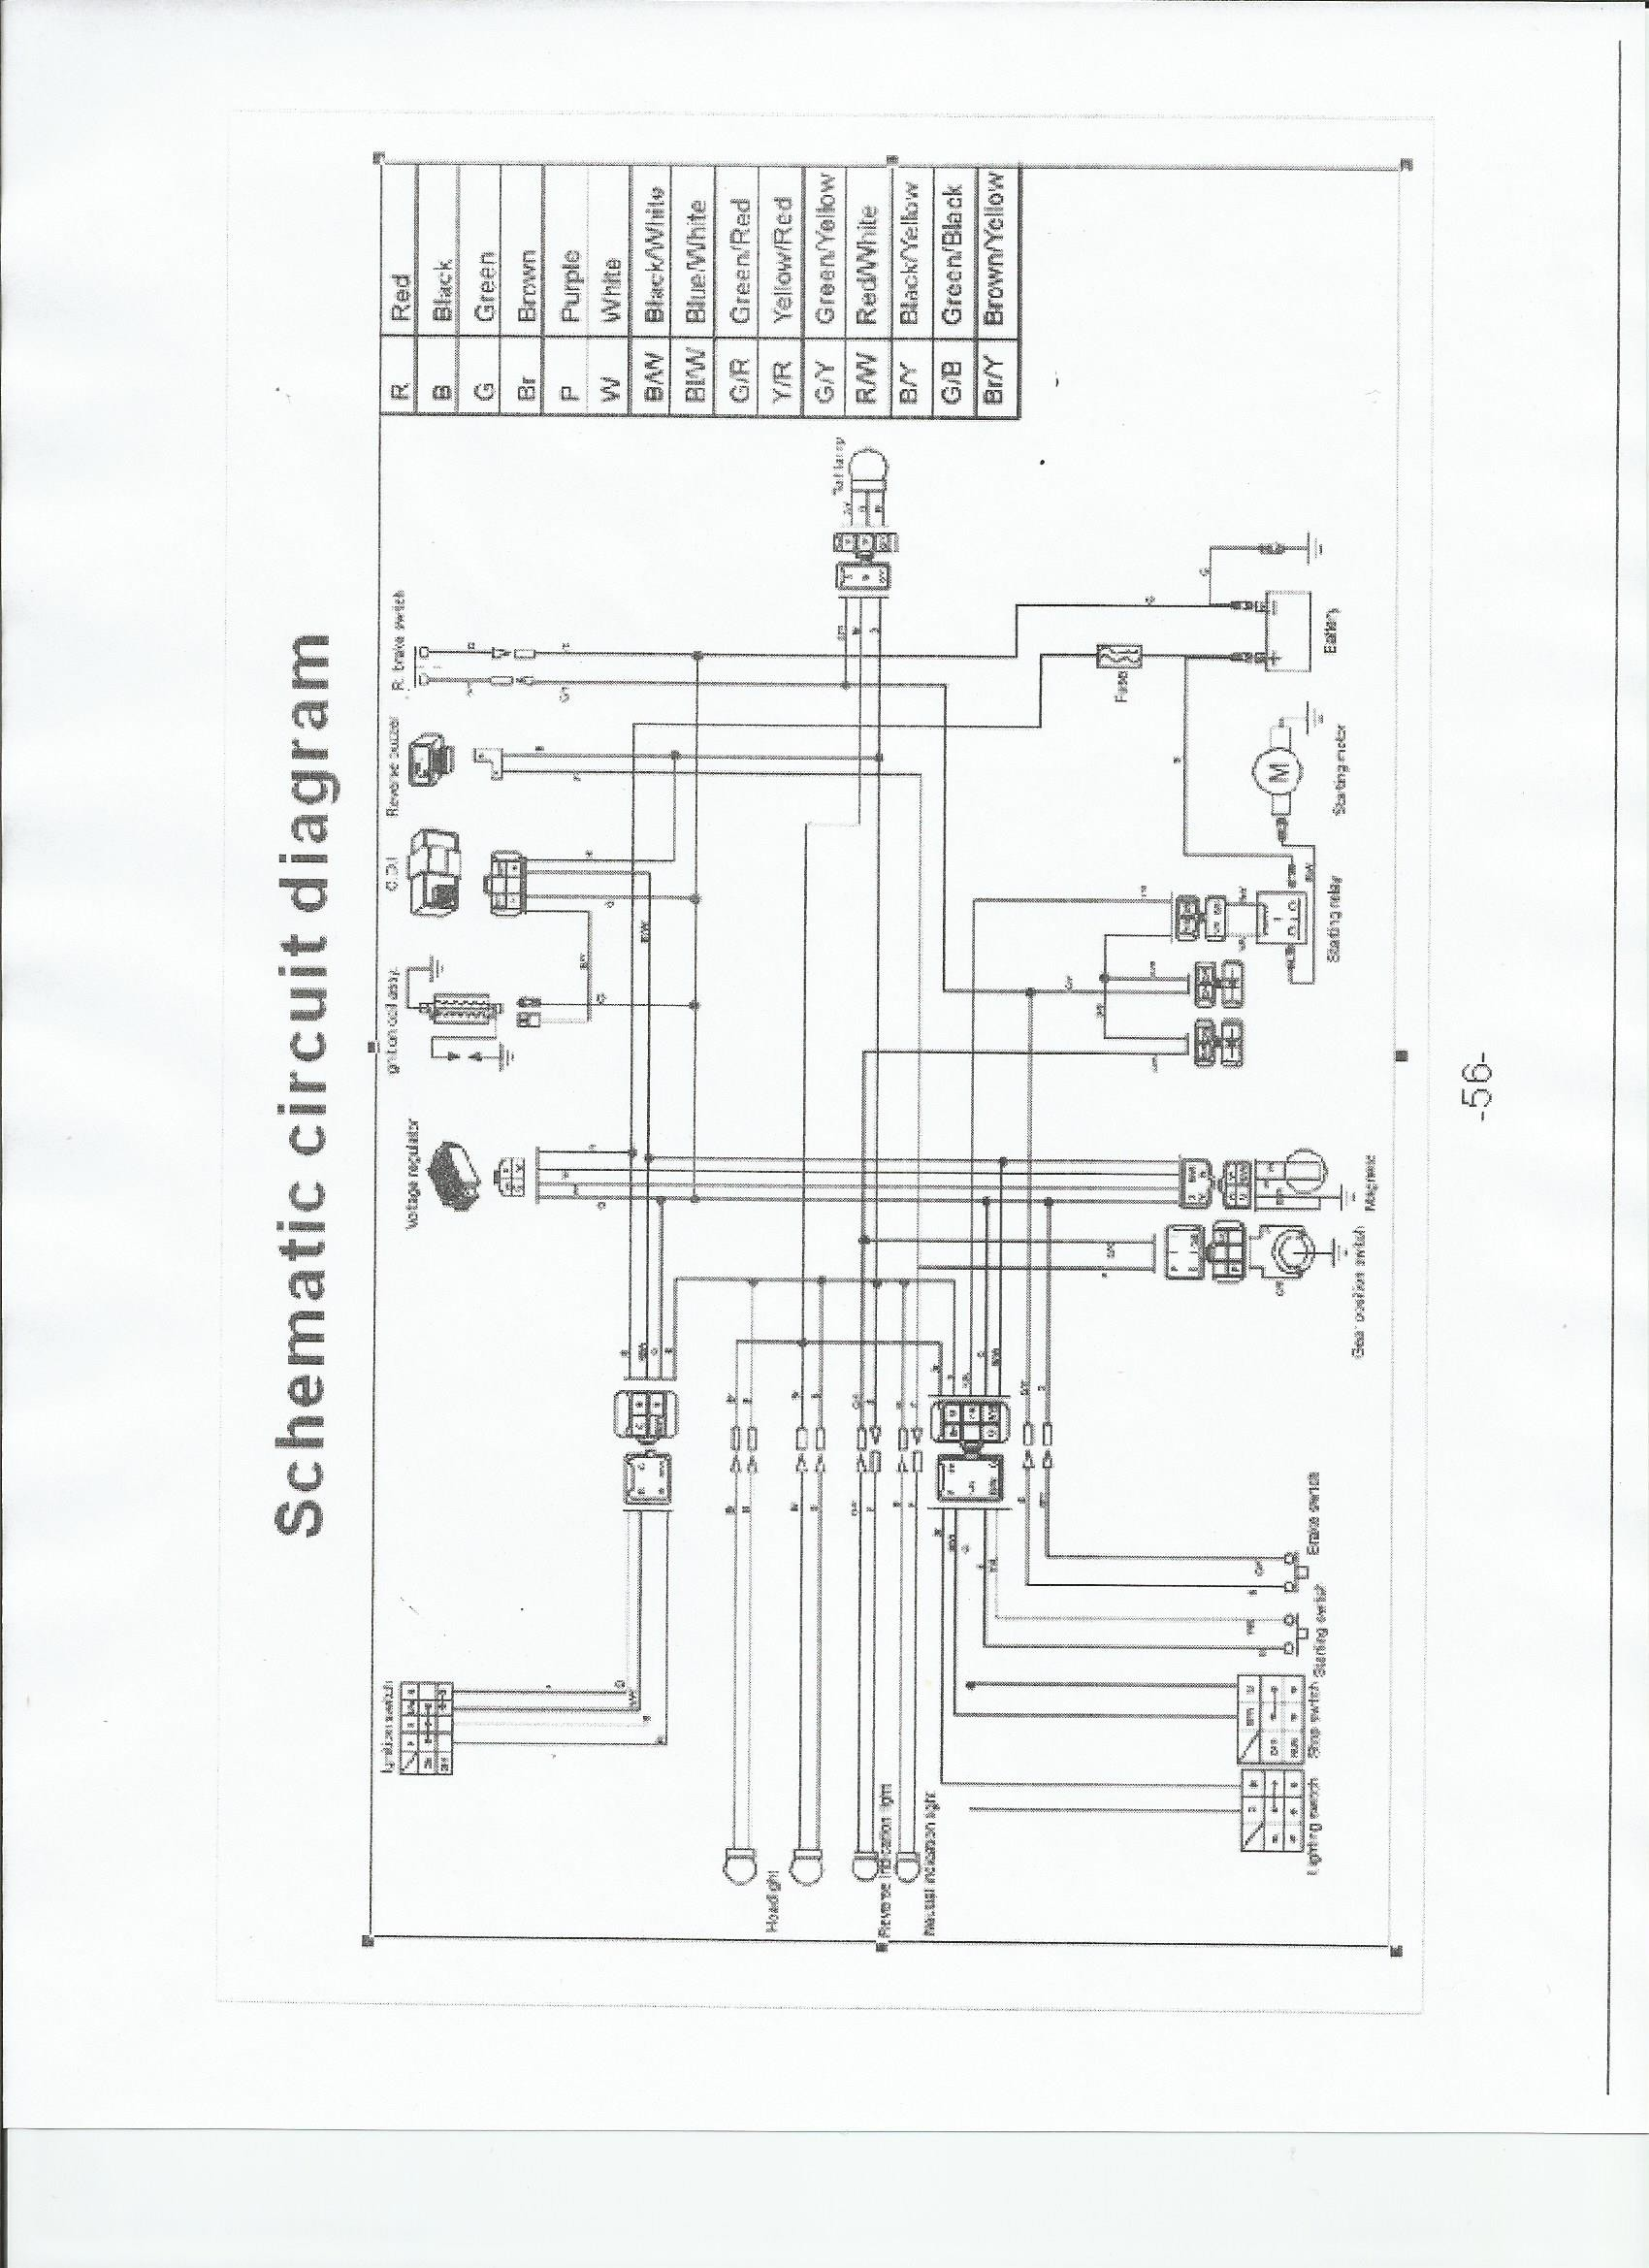 107 atv wiring harness data wiring diagram